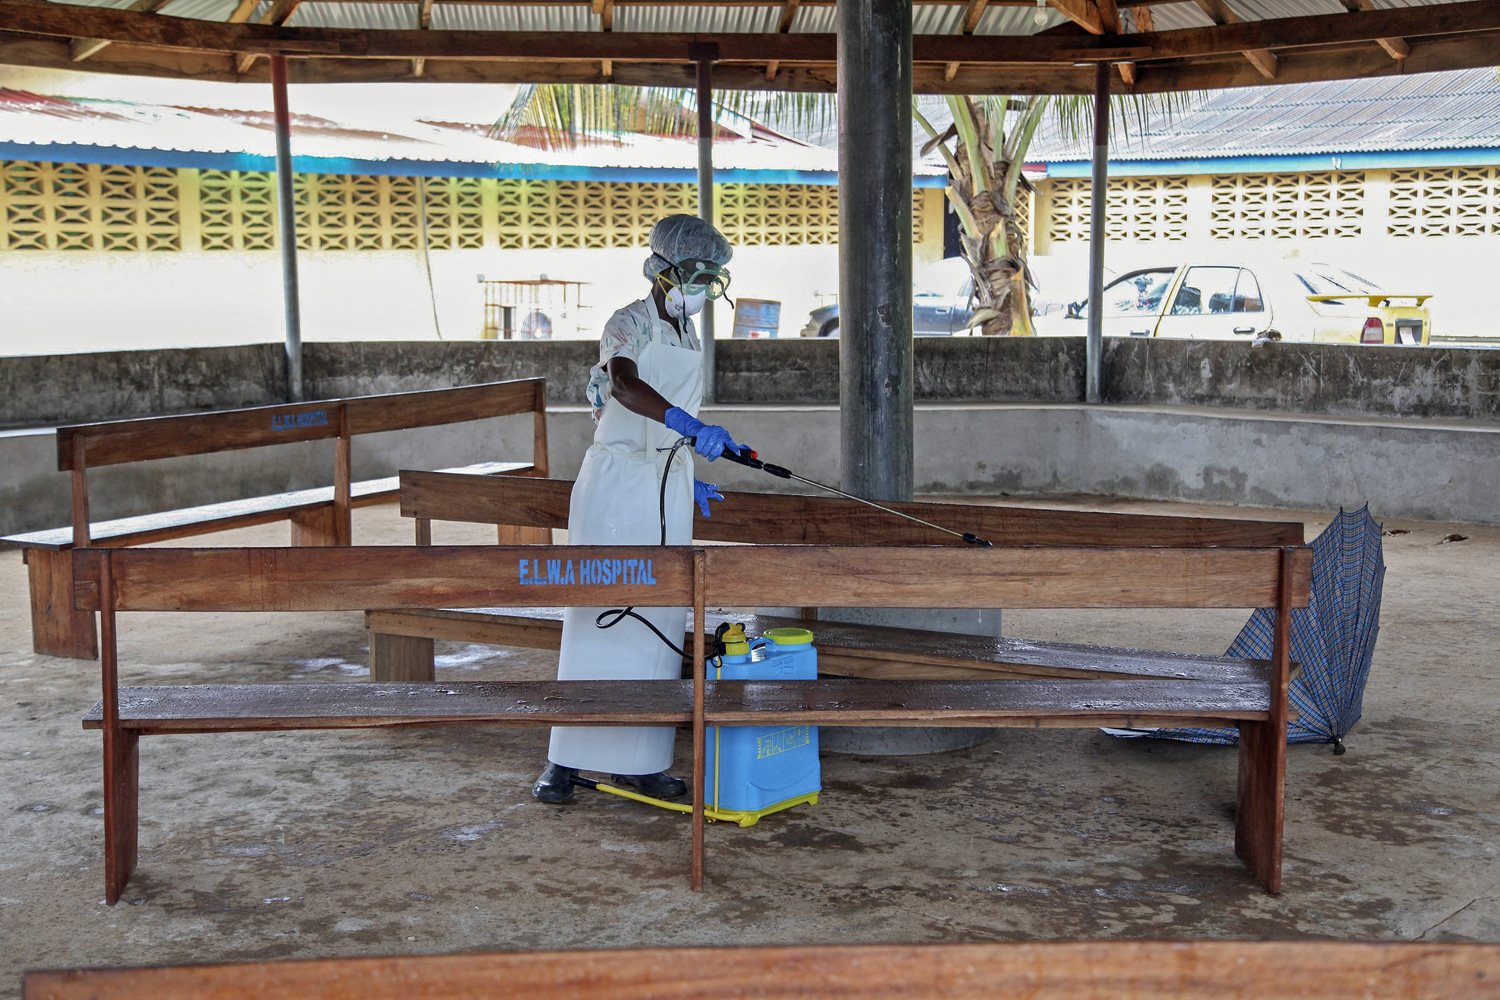 Jul. 28, 2014. A nurse from Liberia sprays preventives to disinfect the waiting area for visitors at the ELWA Hospital where US doctor Kent Bradley is being quarantined in the hospitals isolation unit having contracted the Ebola virus.